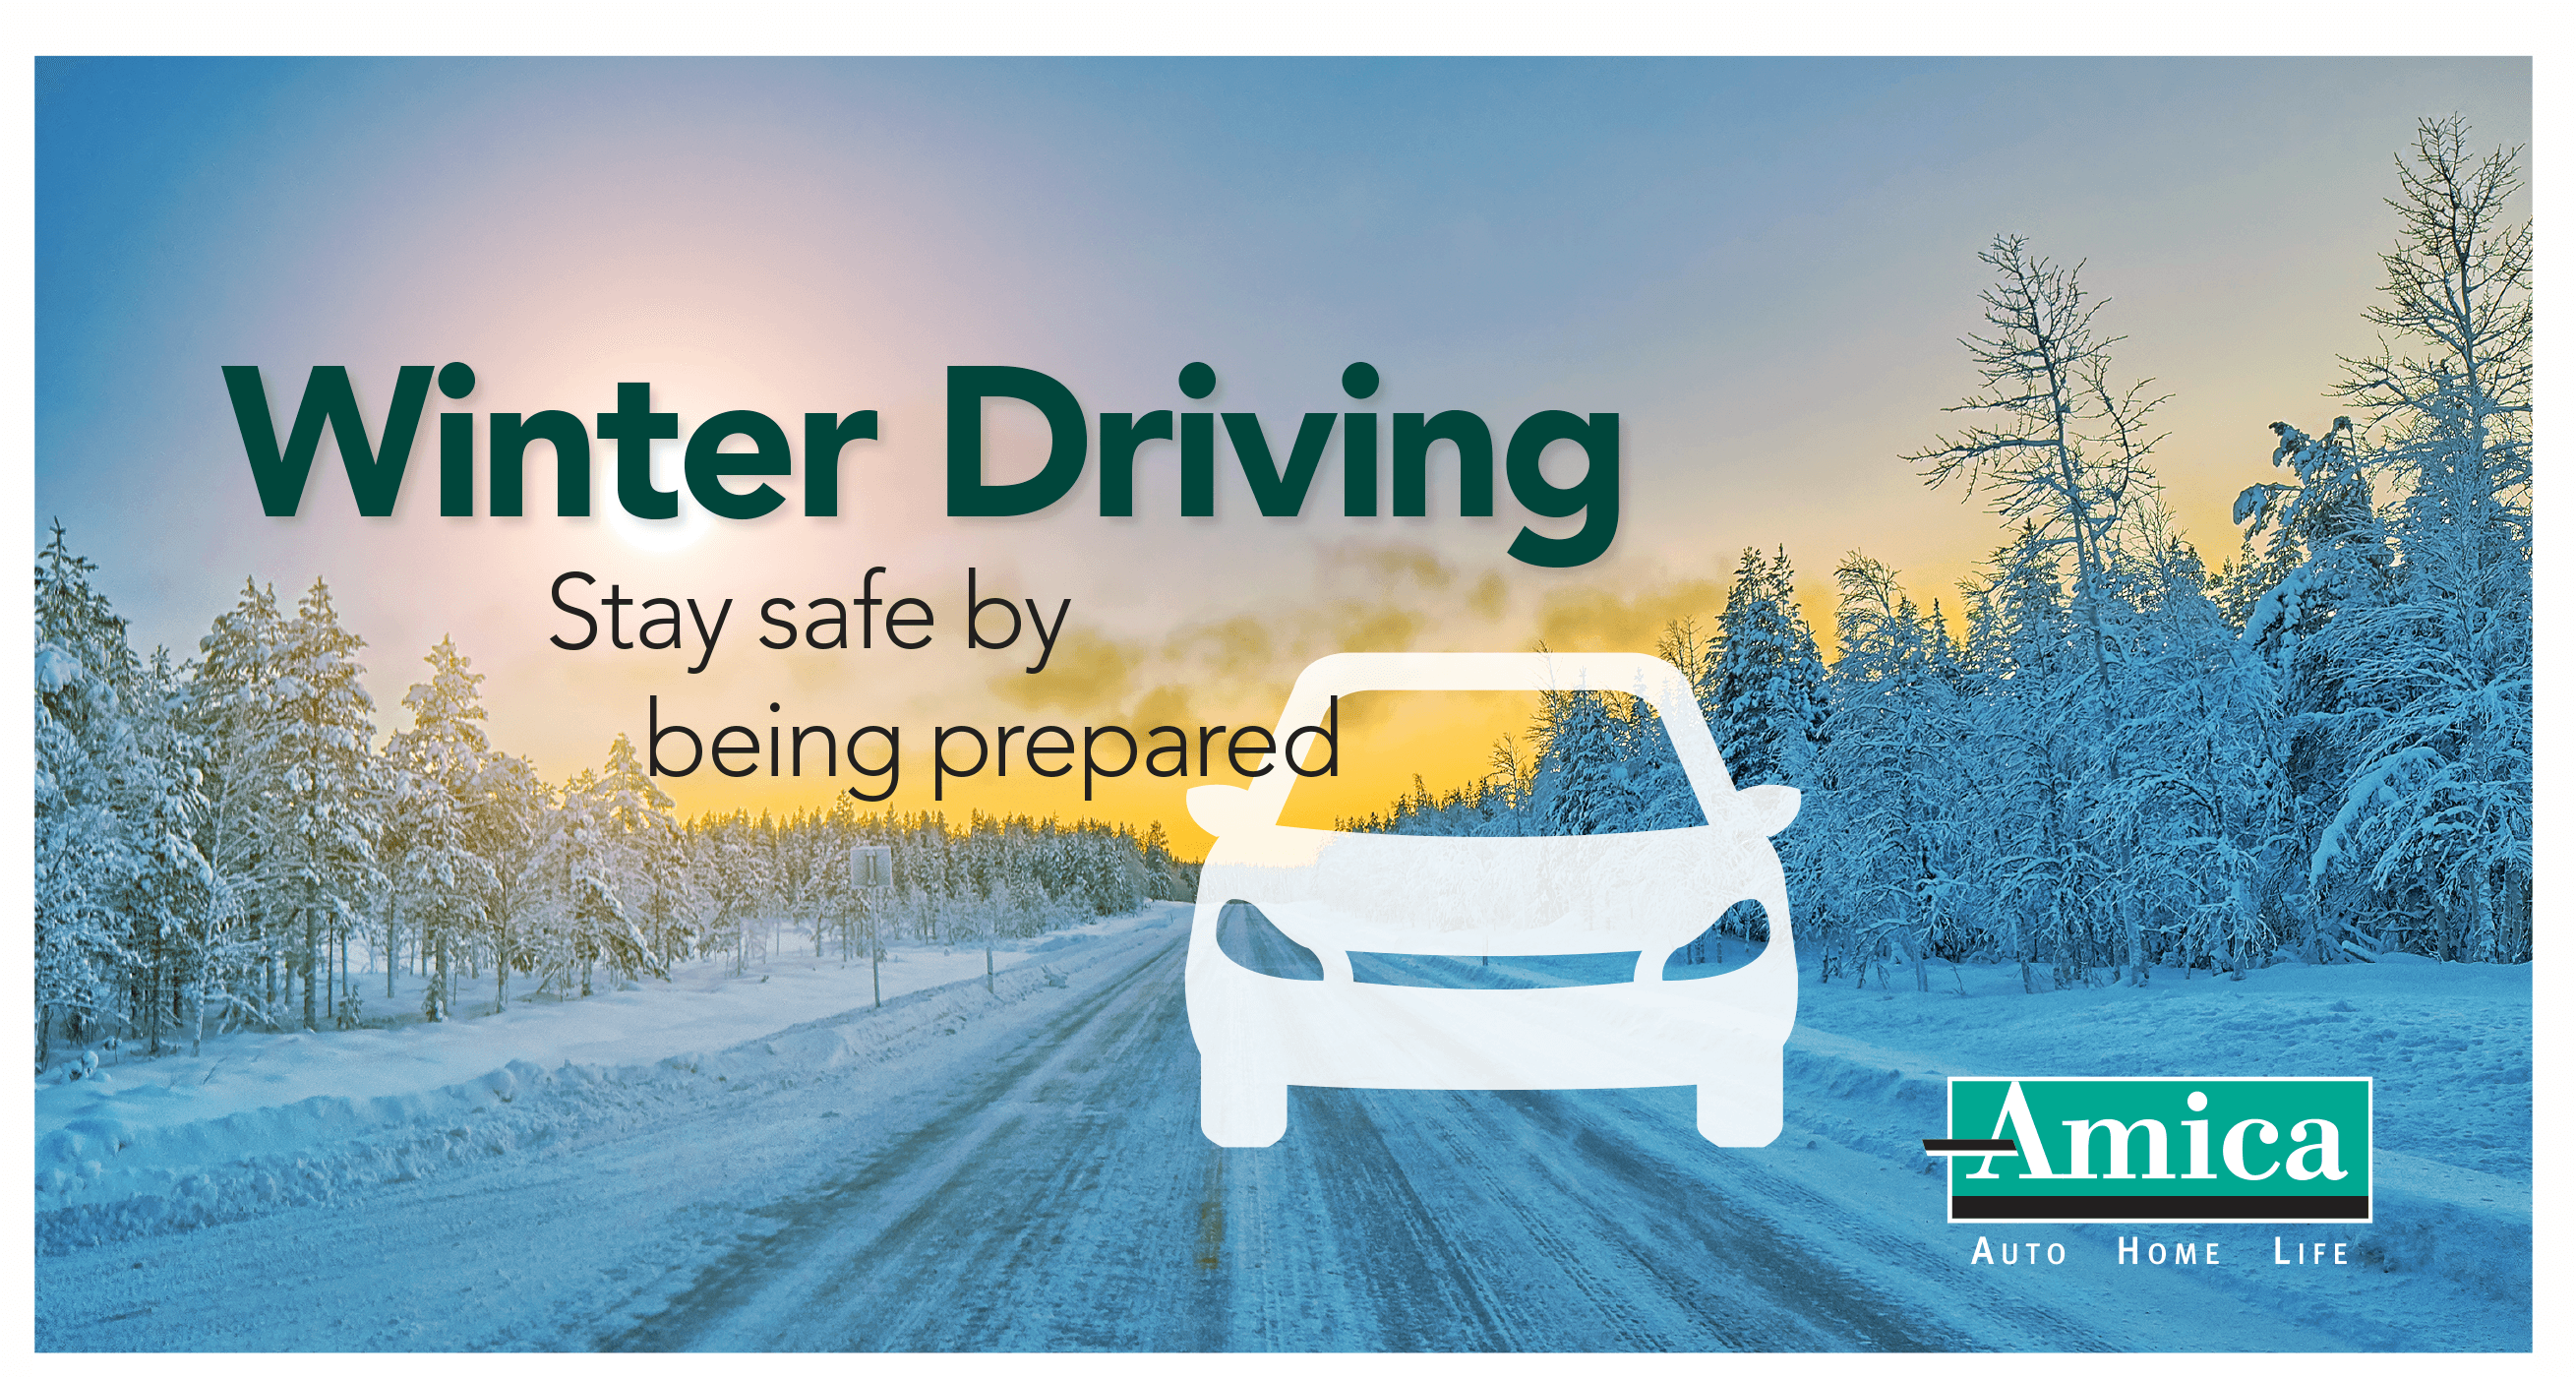 Winter driving: stay safe by being prepared: brought to you by Amica: Snow covered road: snow covered trees line the road